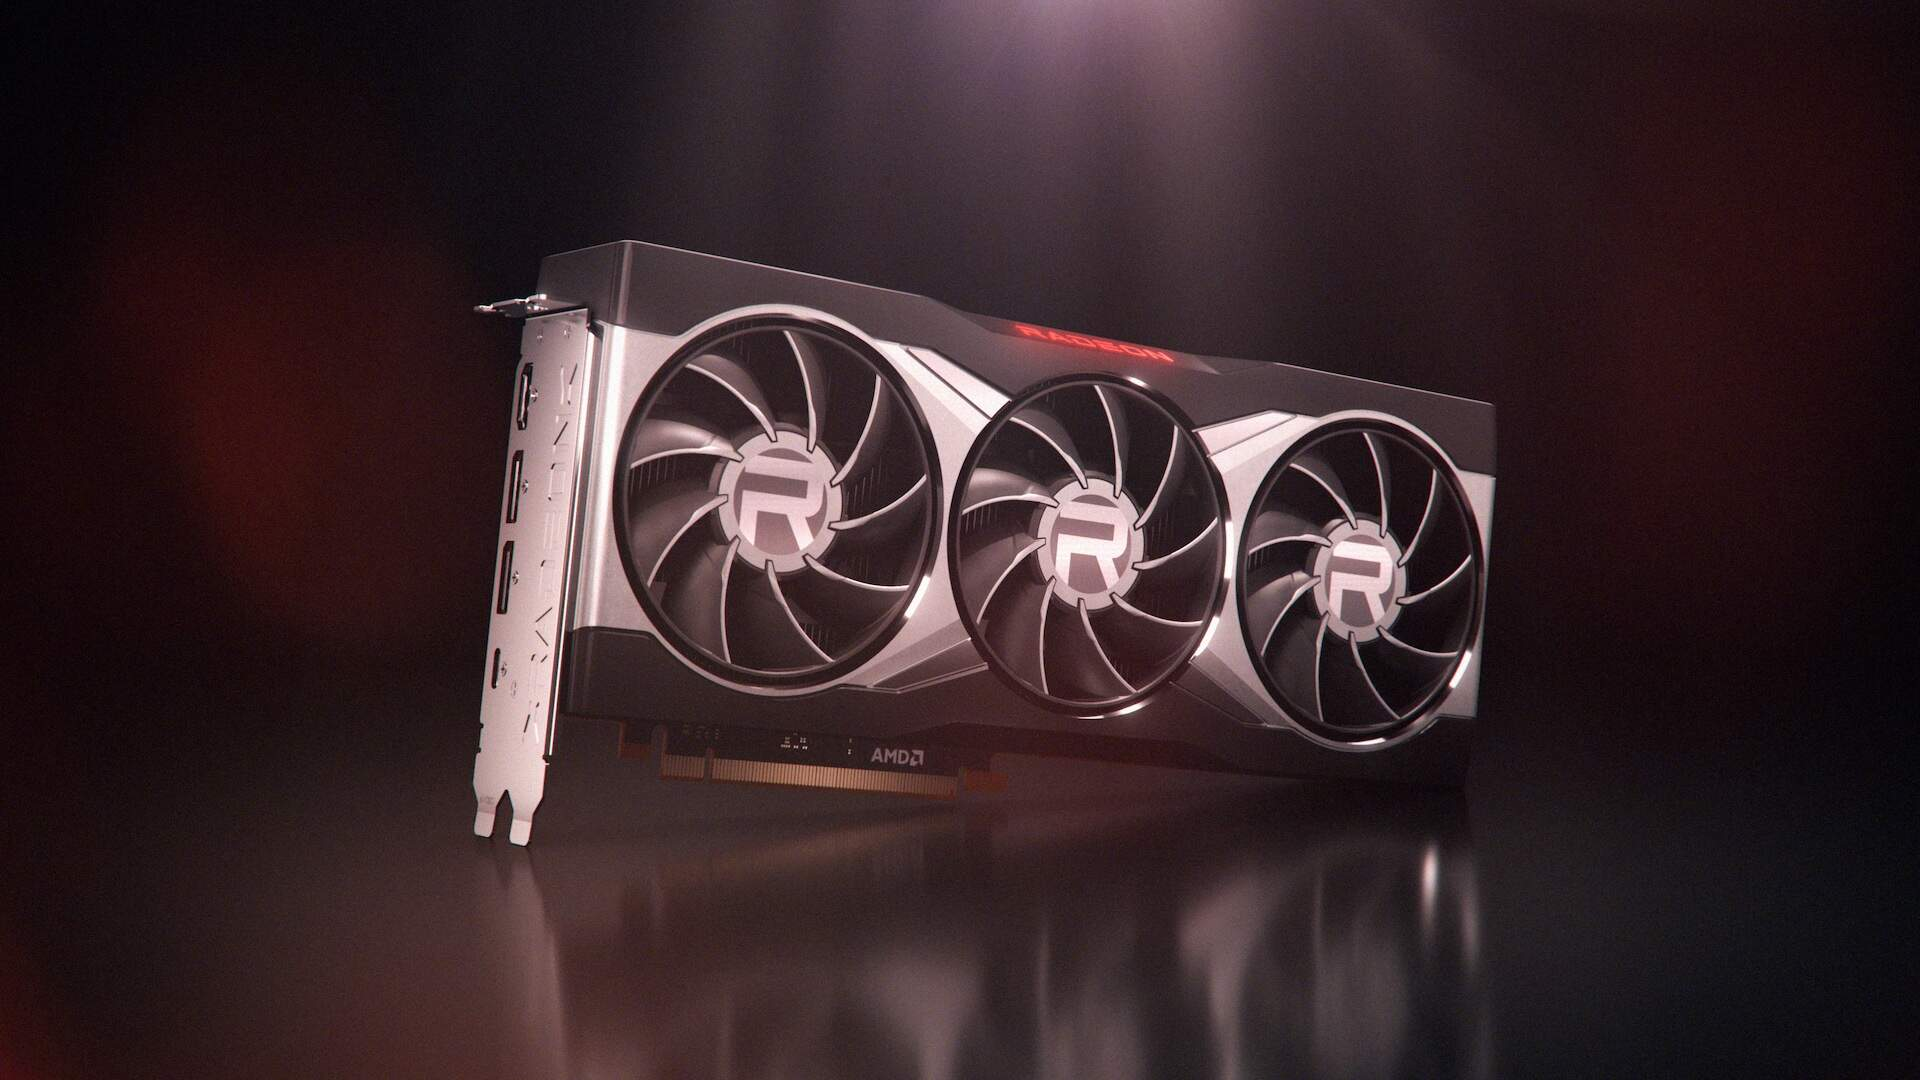 AMD's New 6000 Series Graphics Cards Are Putting Pressure on Nvidia